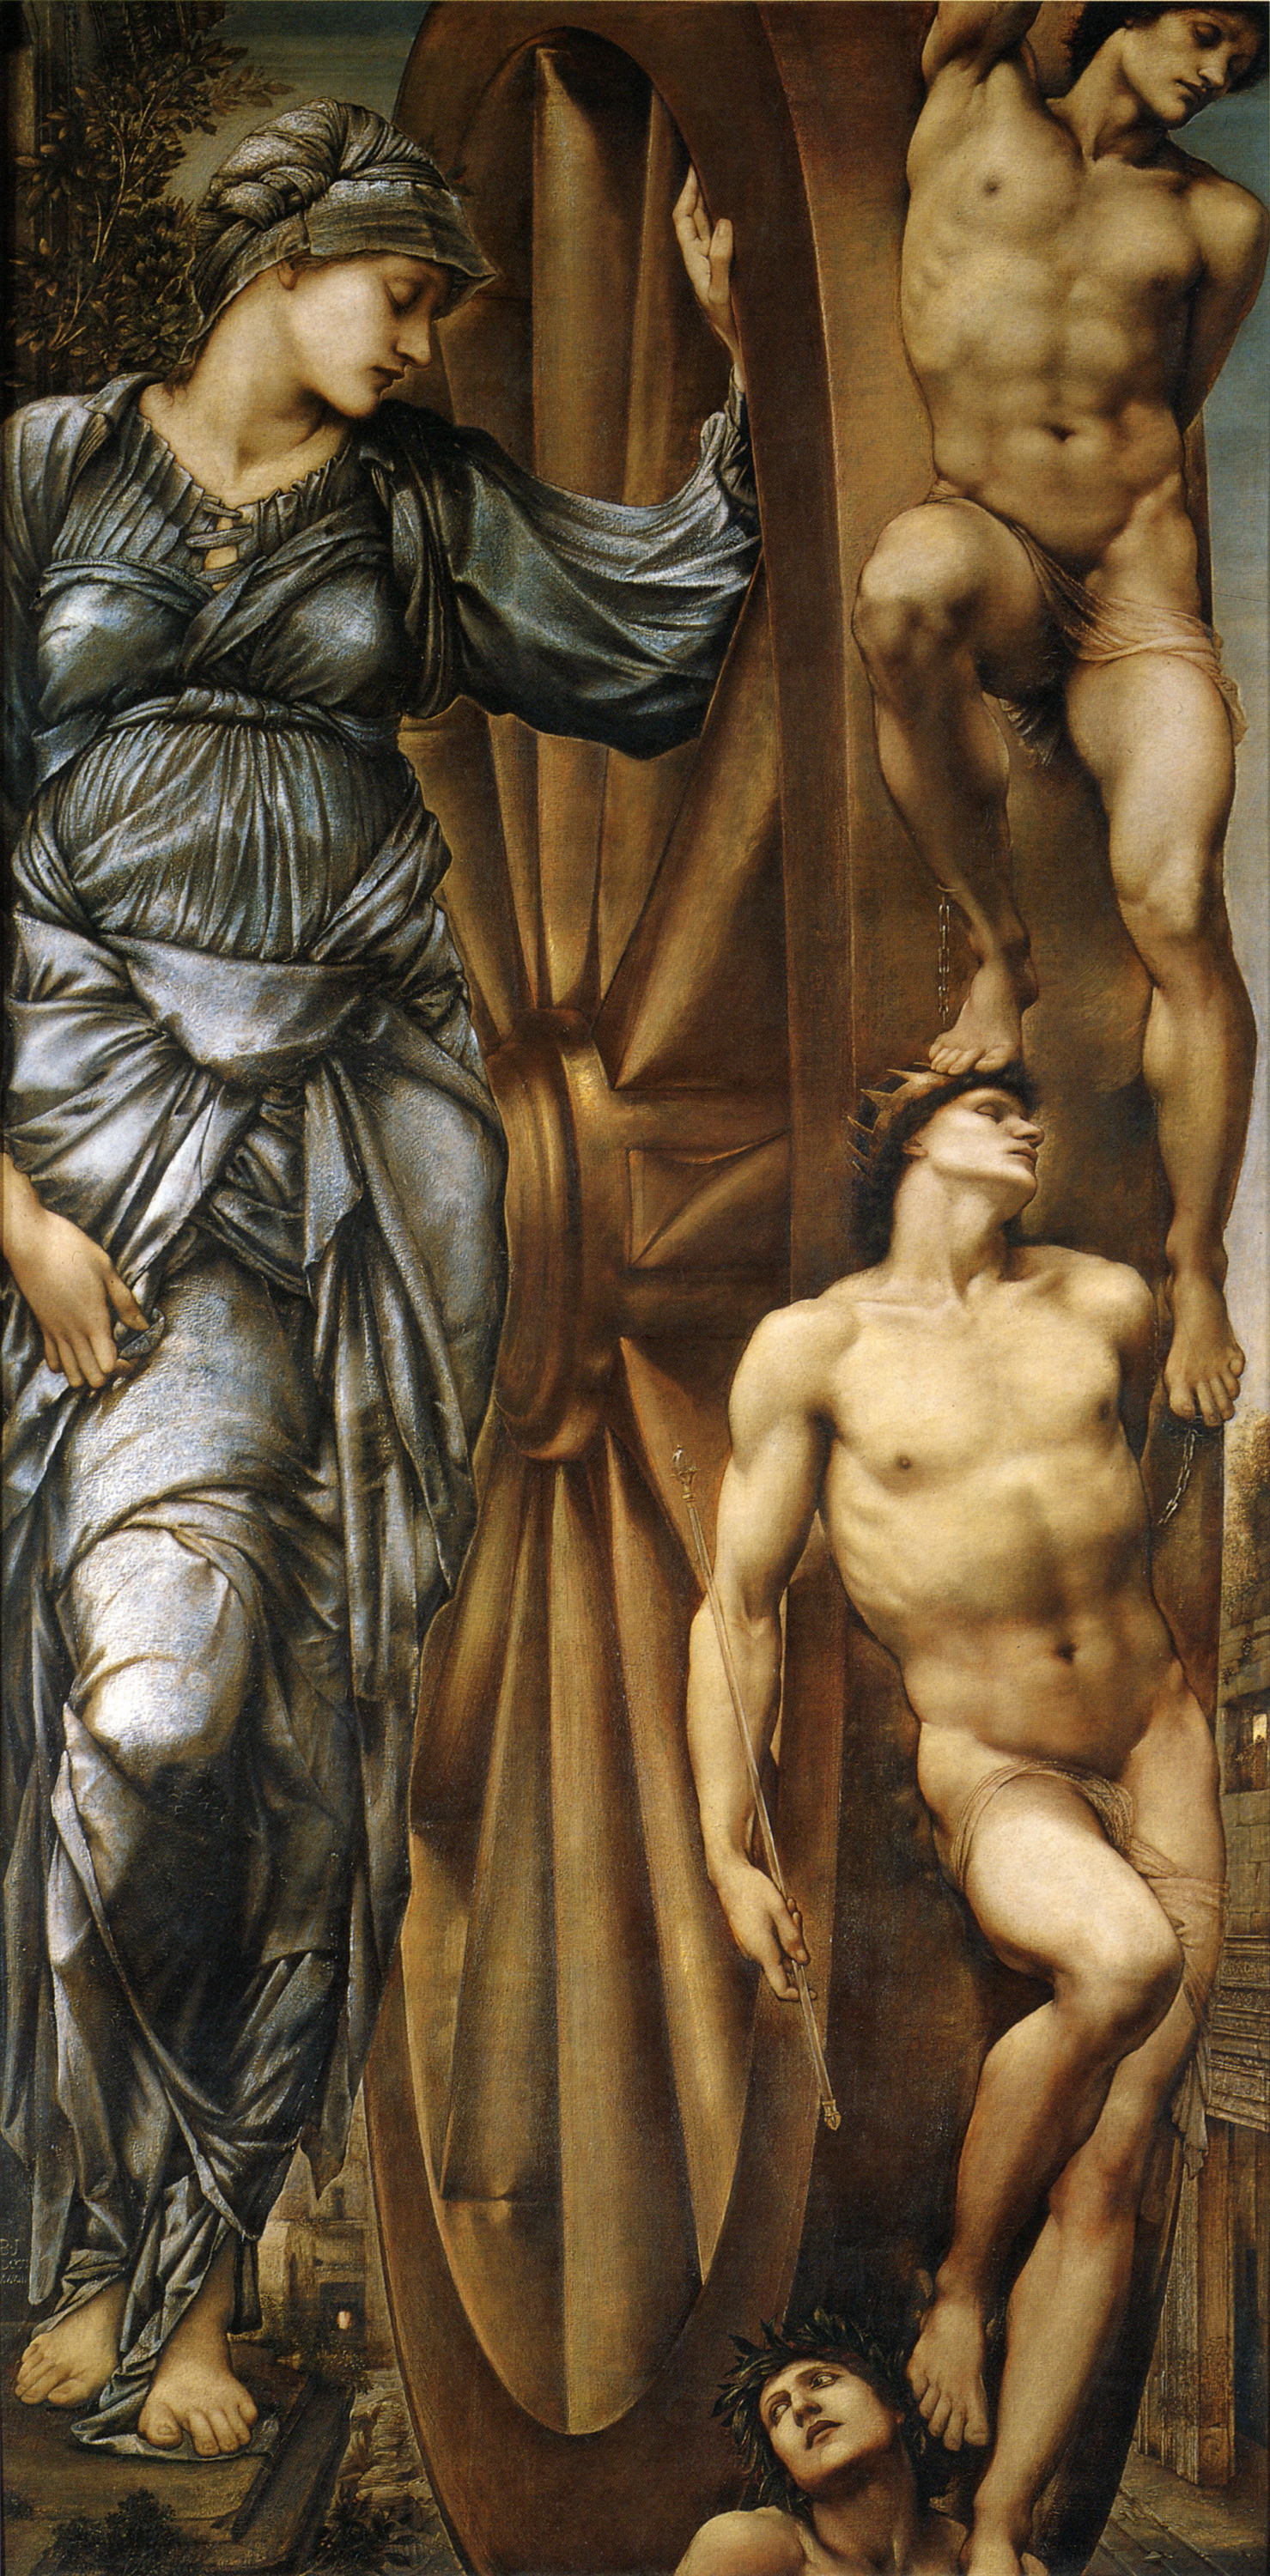 An image of 'The Wheel of Fortune' by Edward Burne-Jones [Public domain]